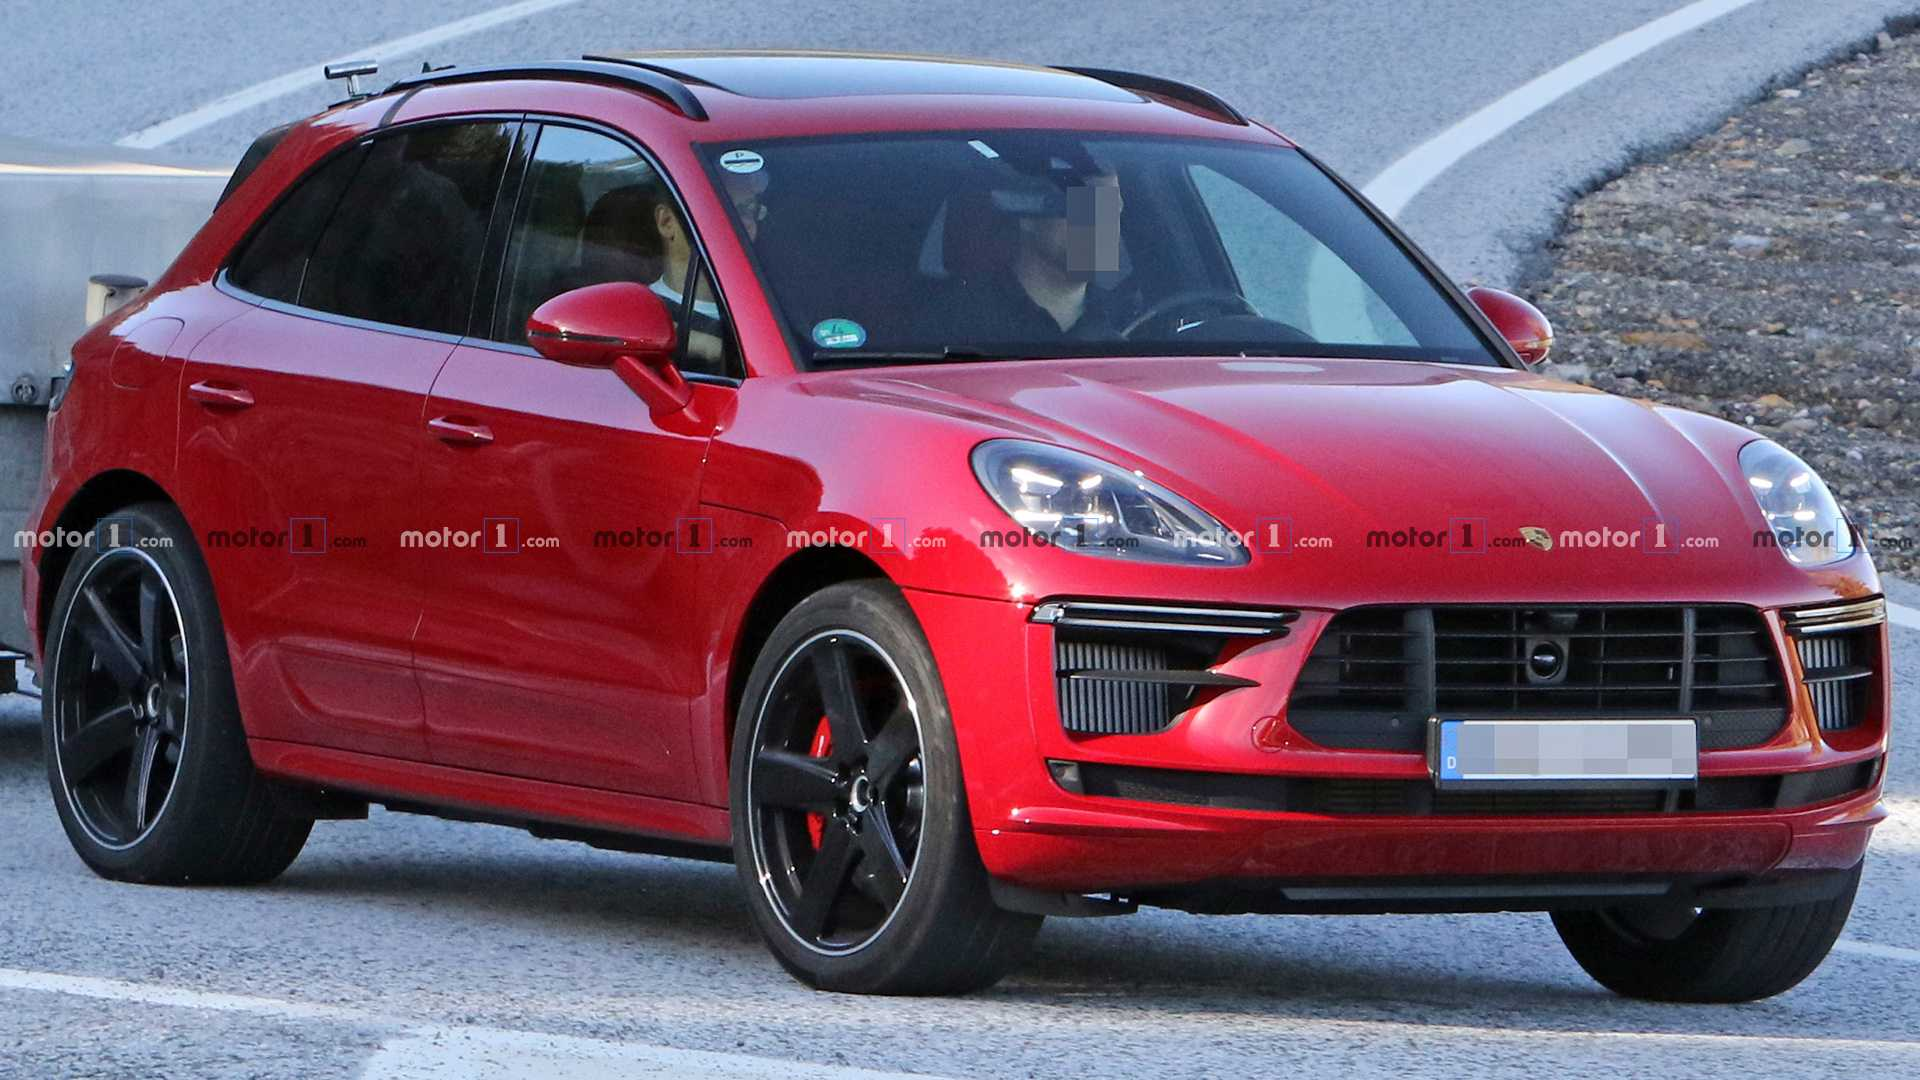 90 A 2020 Porsche Macan Turbo First Drive